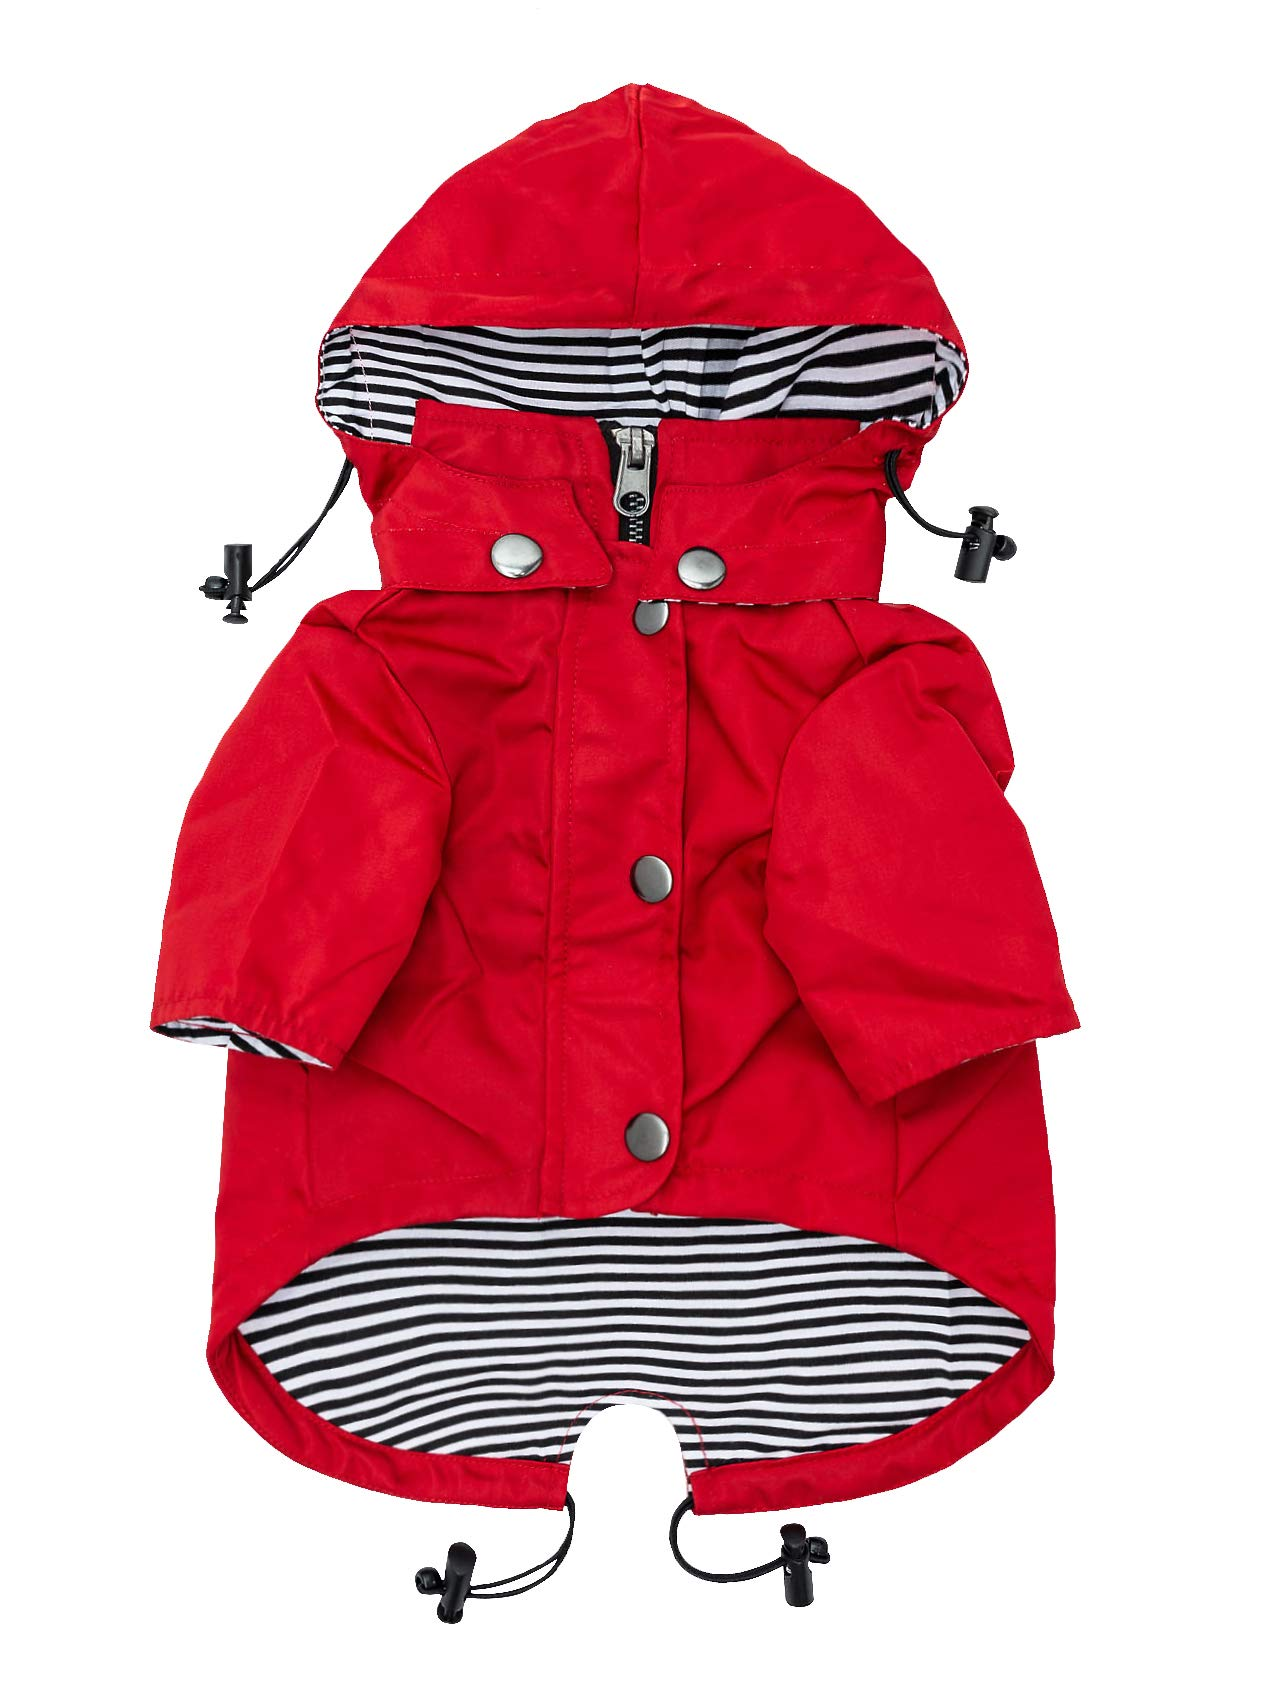 Ellie Dog Wear Red Zip Up Dog Raincoat with Reflective Buttons, Pockets, Rain/Water Resistant, Adjustable Drawstring, Removable Hoodie - Size XS to XXL Available - Stylish Premium Dog Raincoats (L) by Ellie Dog Wear